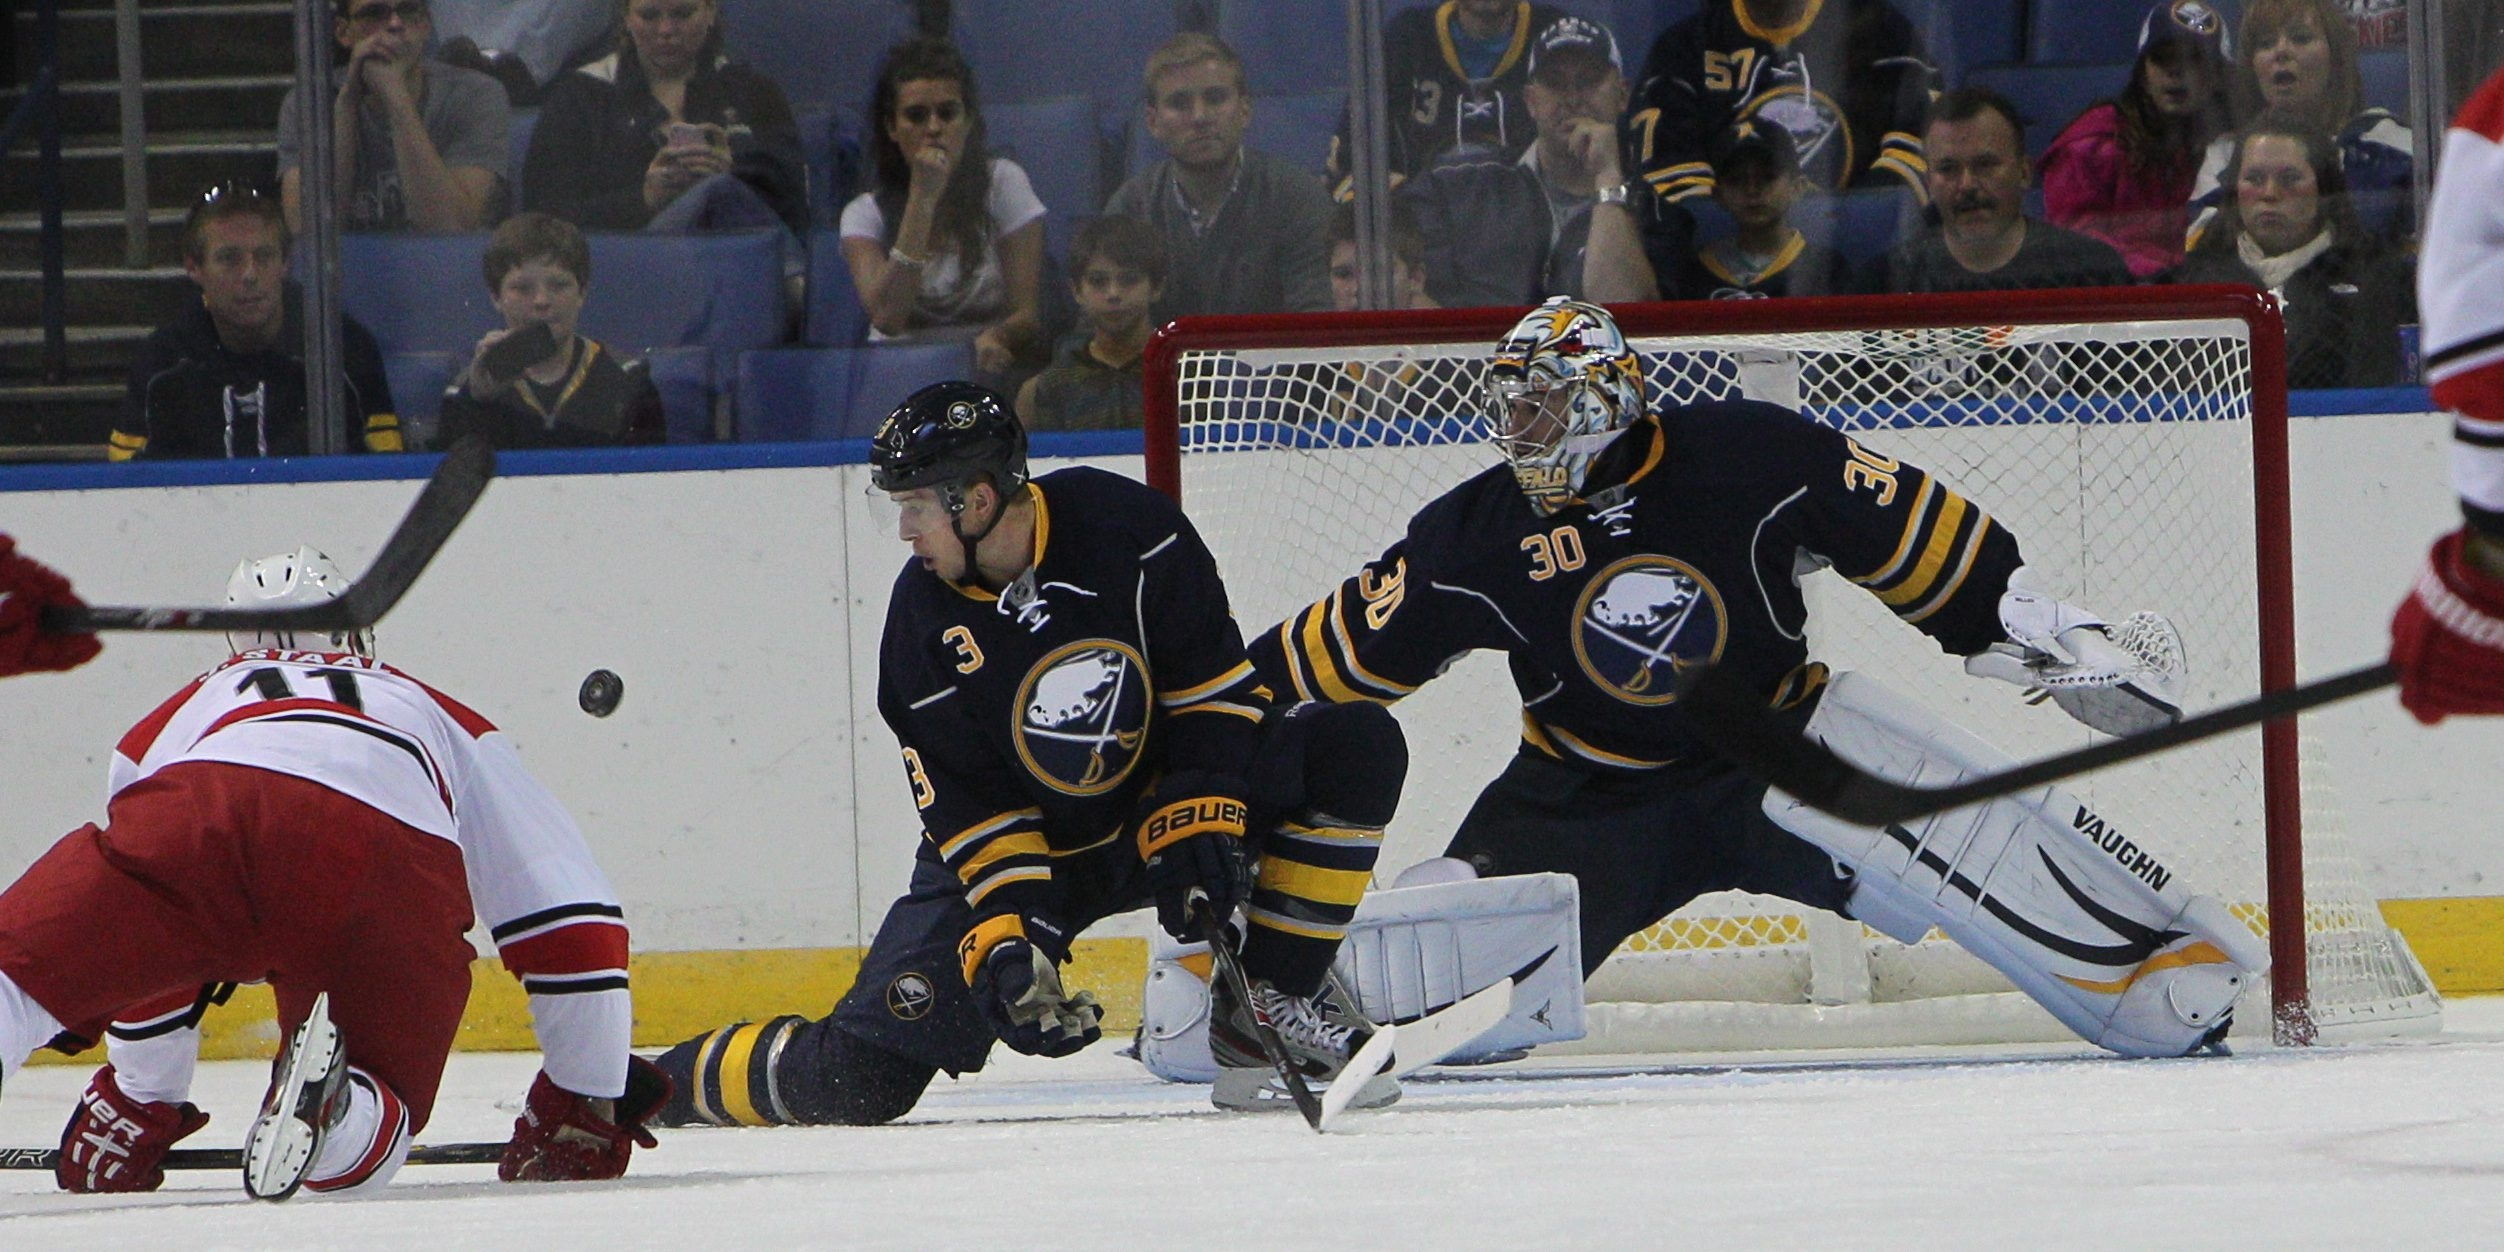 Buffalo's Mark Pysyk (3) could turn out to be the best friend of Sabre goalies like Ryan Miller (30) this season.